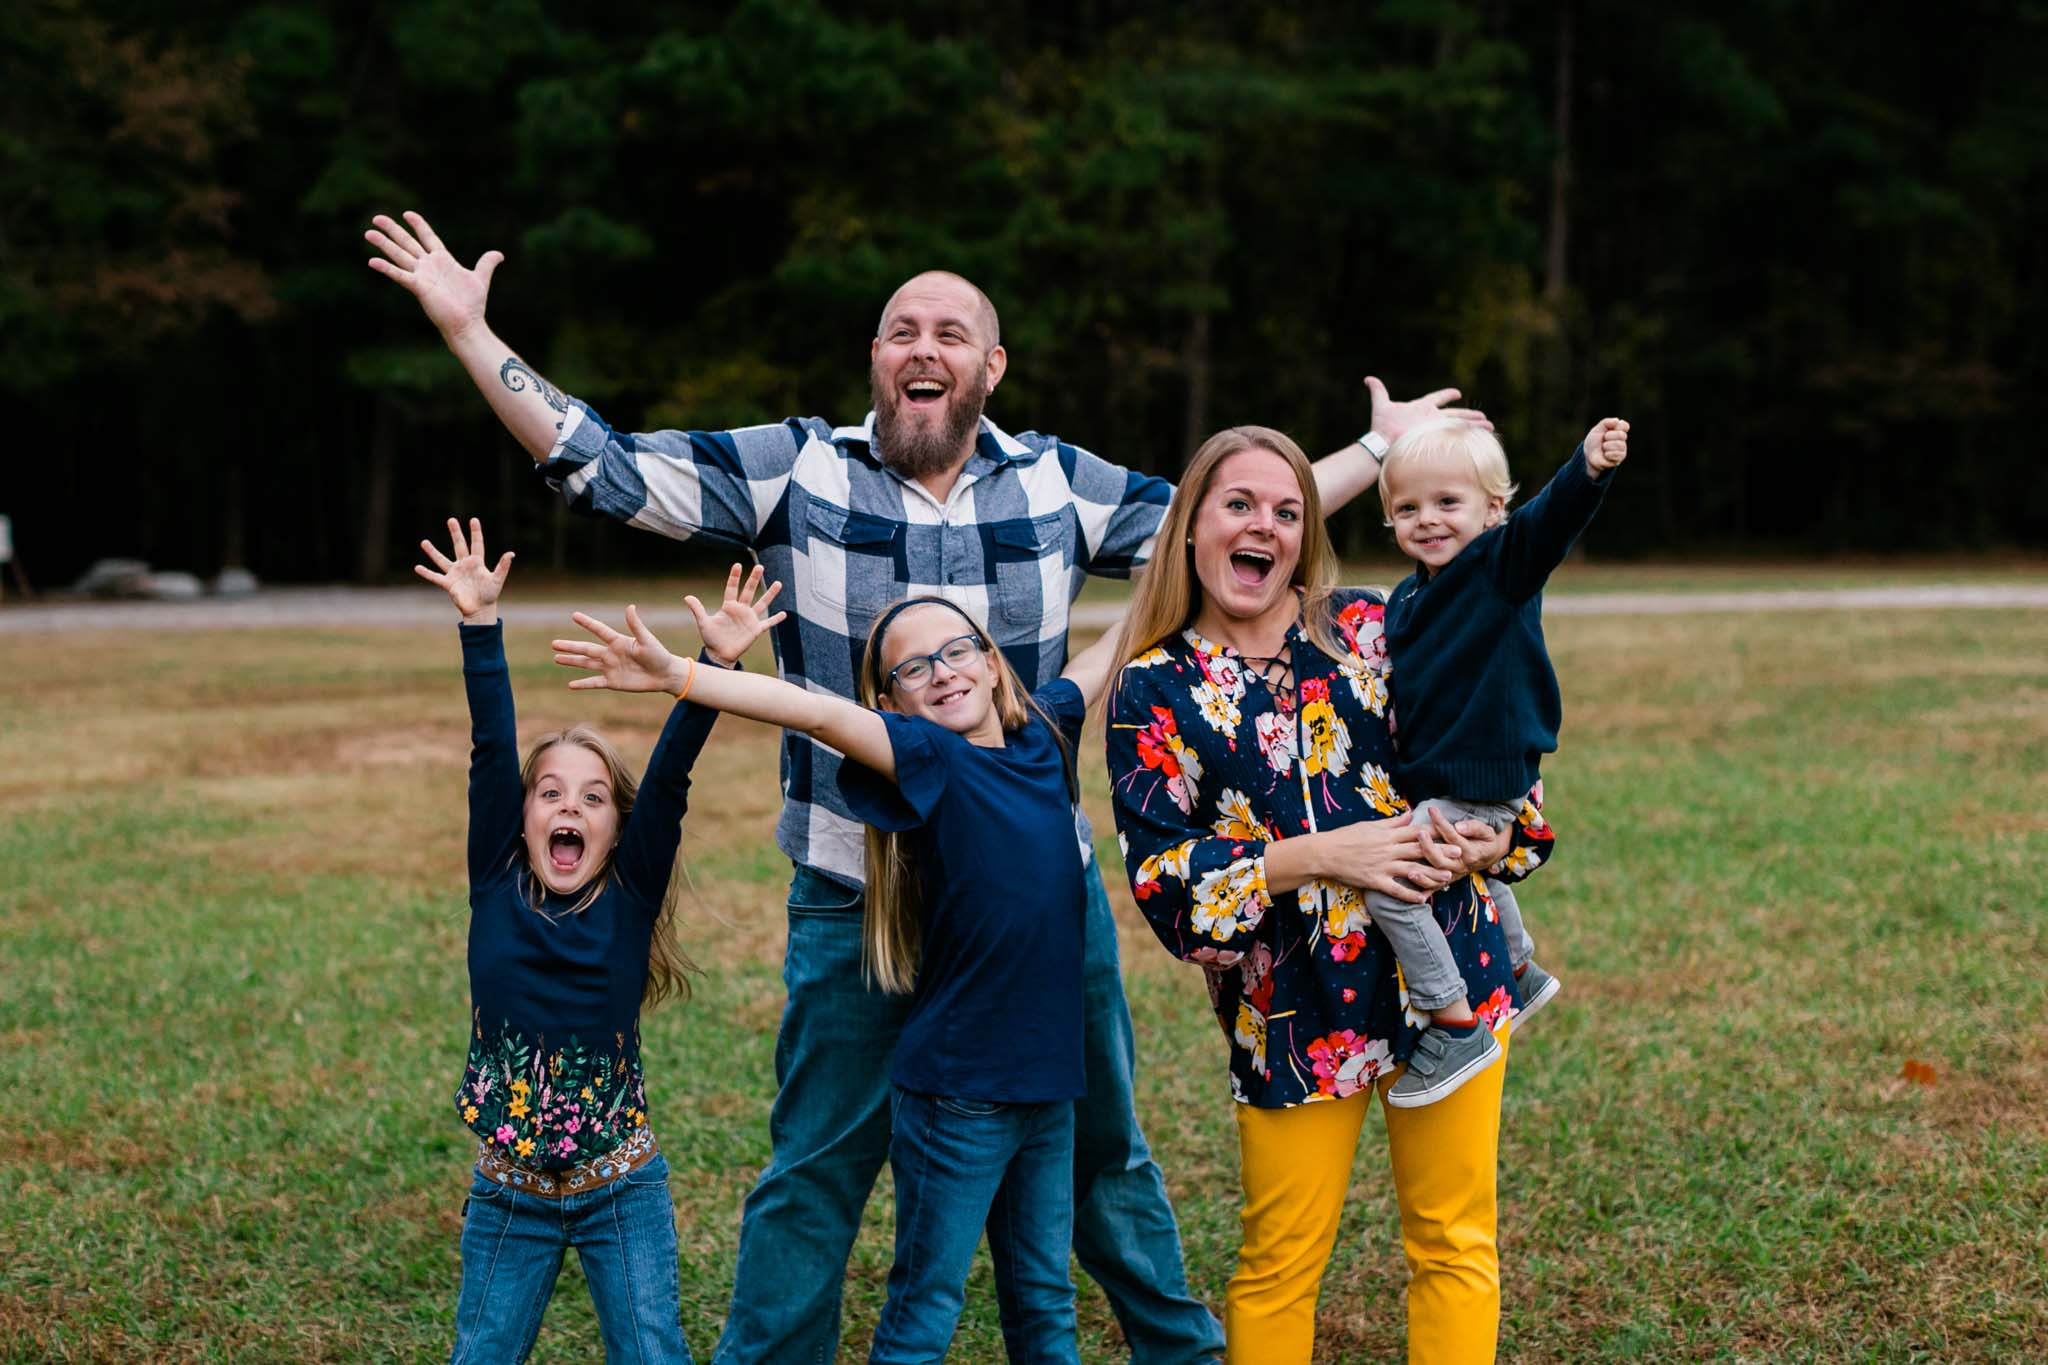 Candid photo of family laughing at Umstead Park | Raleigh Family Photographer | By G. Lin Photography